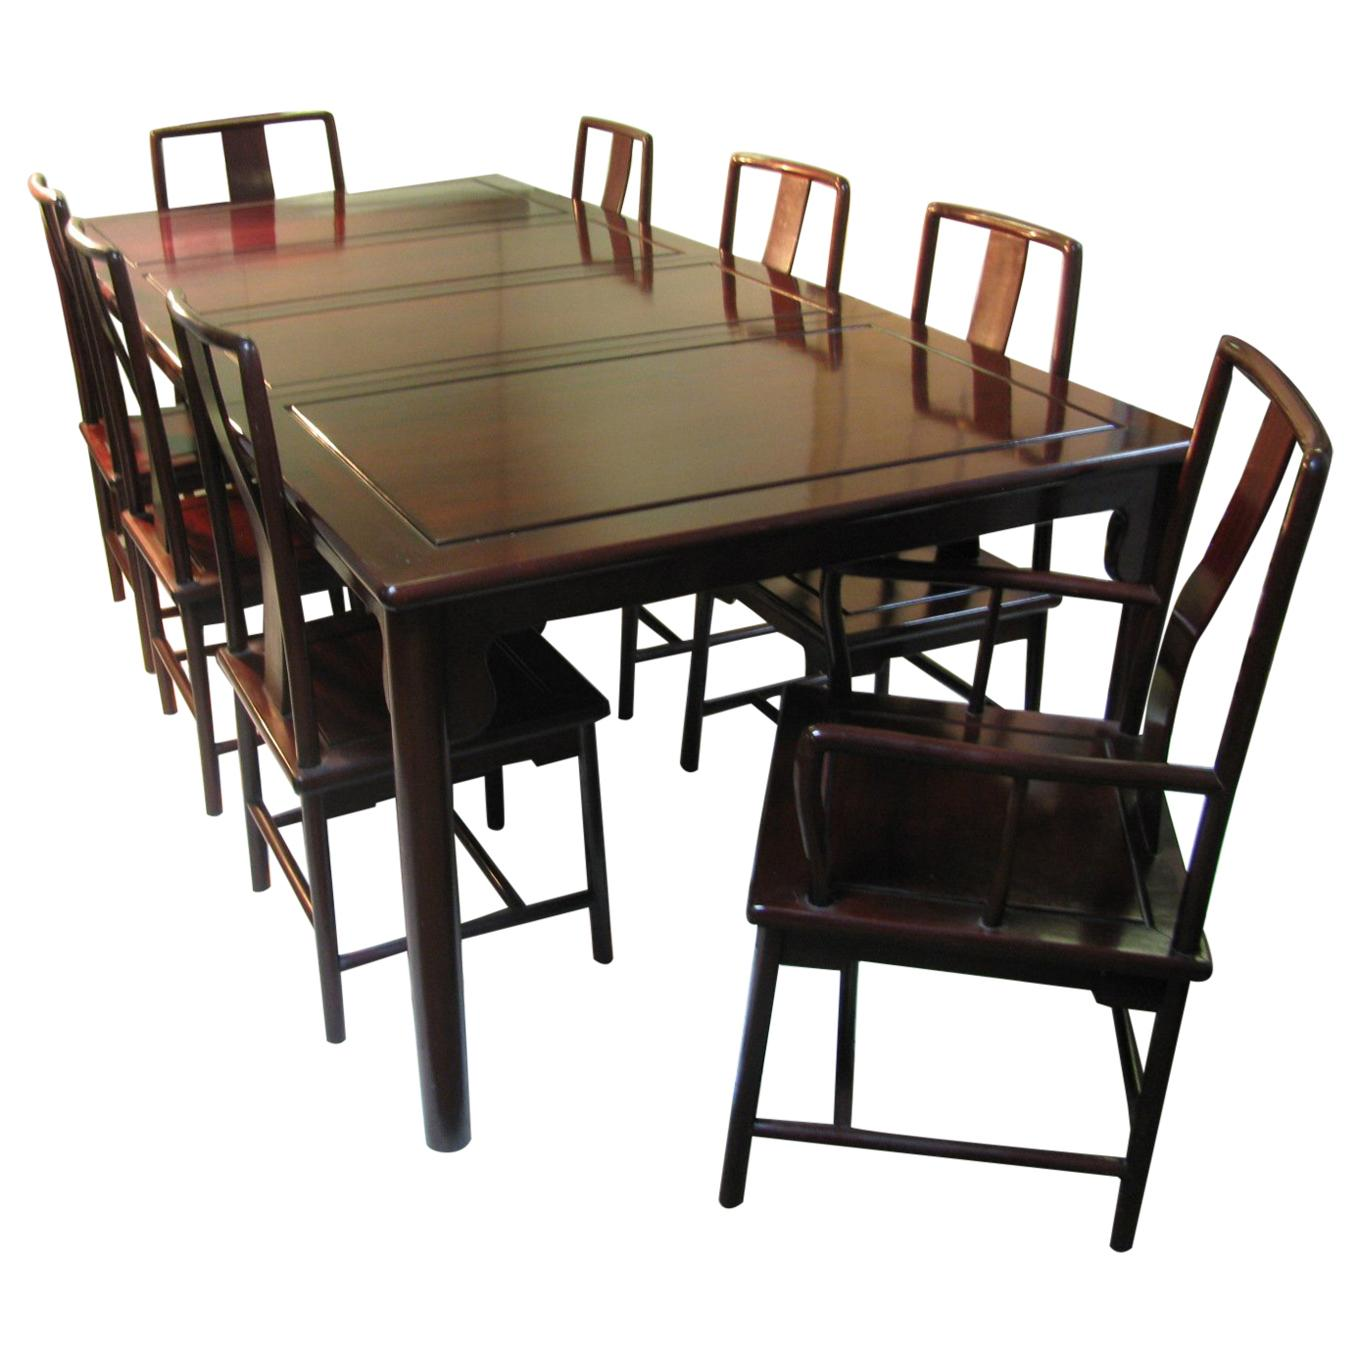 225 & Midcentury Chinese Rosewood Dining Table and Eight Chairs